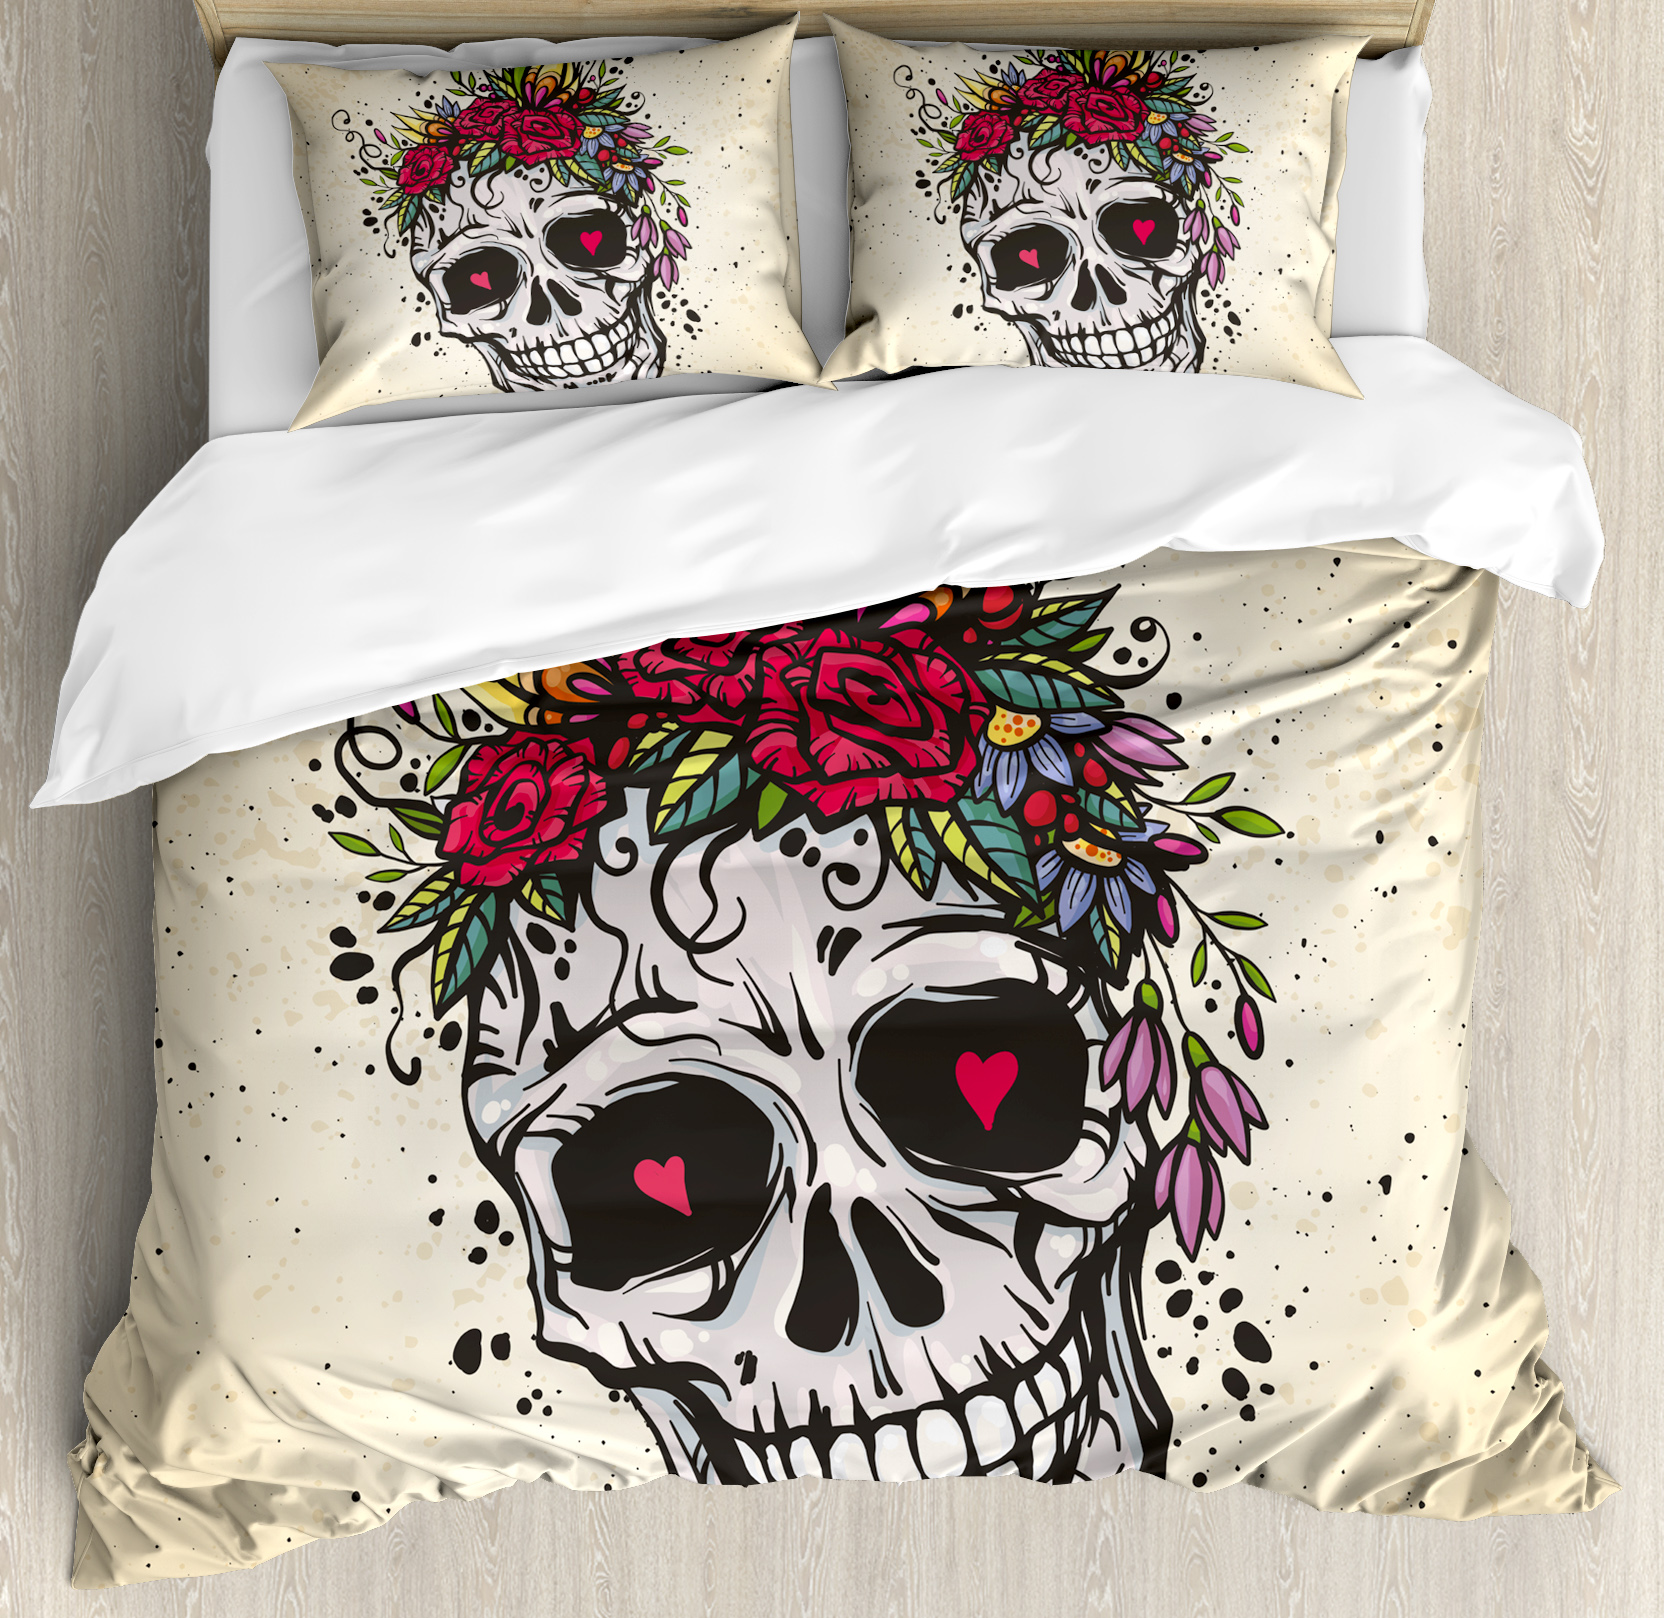 Sugar Skull Decor King Size Duvet Cover Set, Human Skull With Wreath Of  Roses And